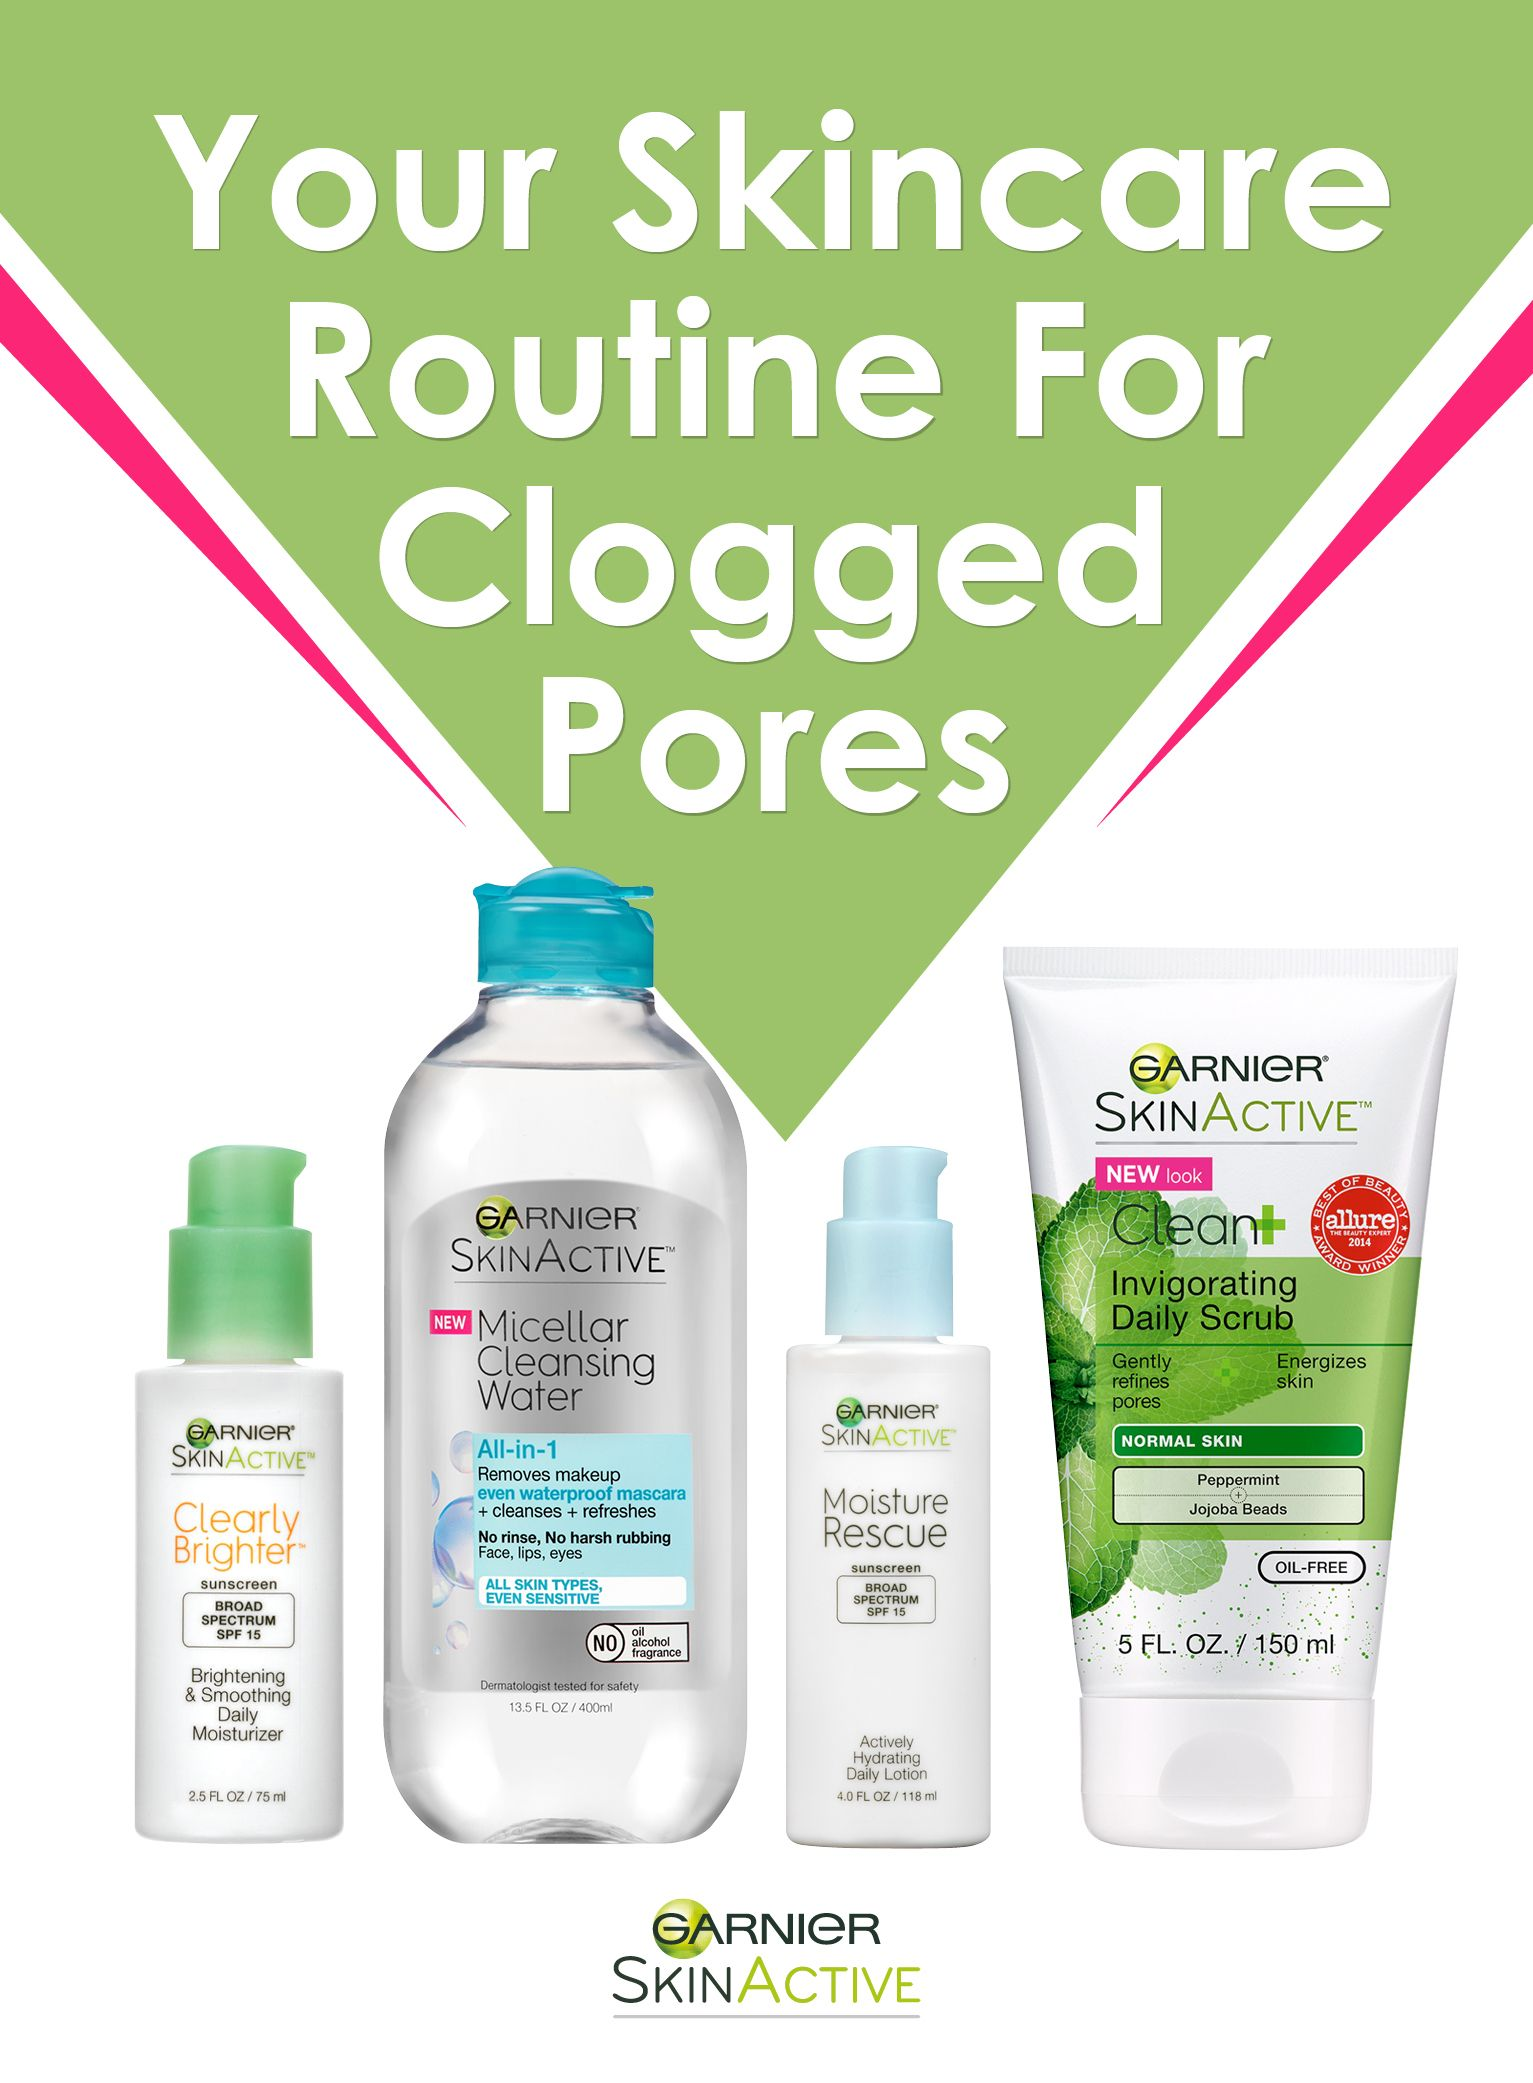 Clogged pores are the WORST! If you have oily or